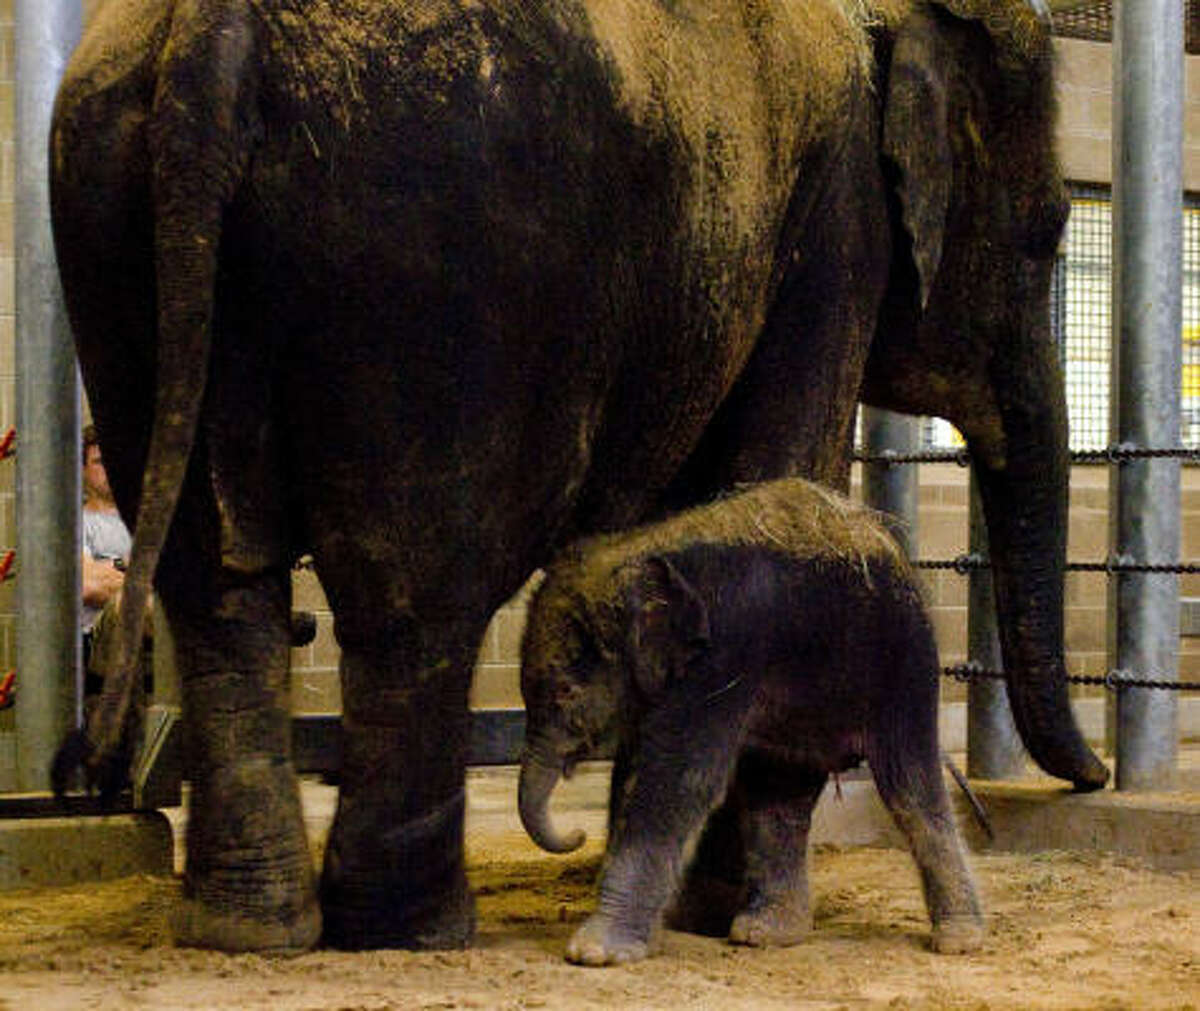 Baylor is 19-year-old Shanti's third calf. Her first baby, Bella, died after her leg was broken. Second calf Mac died of elephant herpes virus. ?• Zoo hopes baby is a survivor ?• Video: Watch baby Baylor's meal